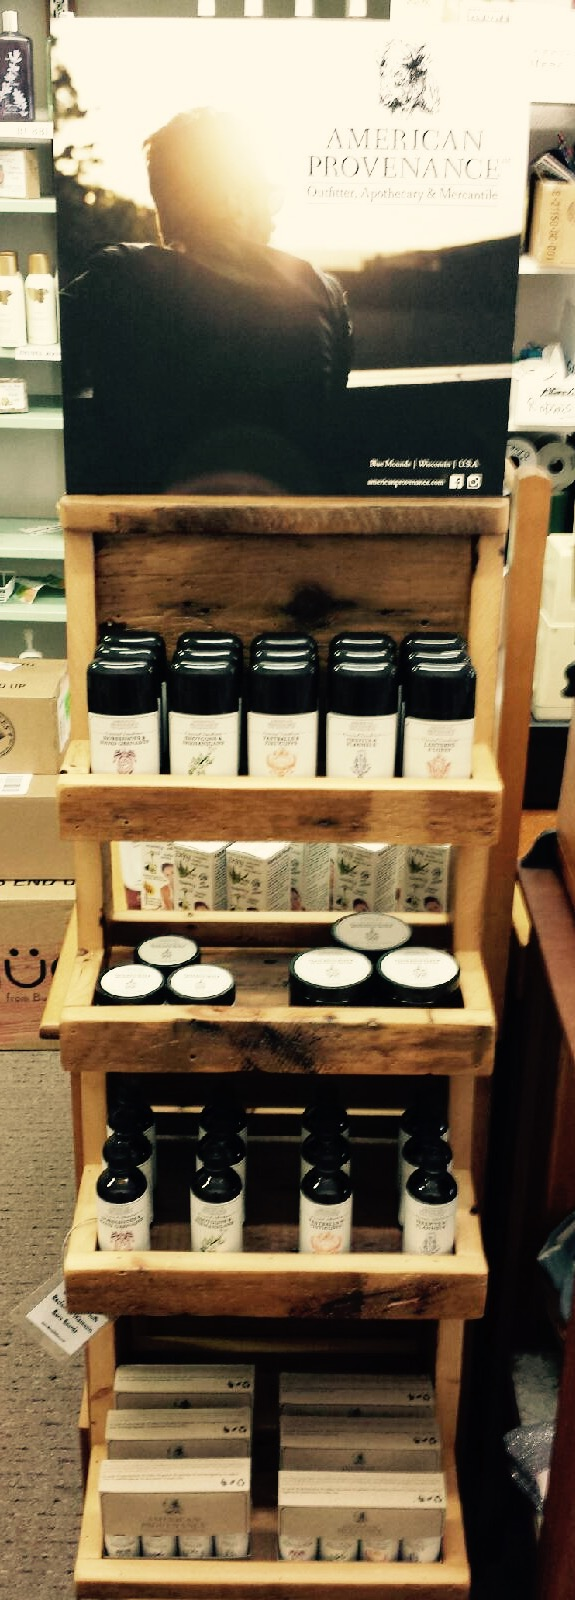 American Provenance all natural grooming products now at Isaccs Soaps in Mt Horeb